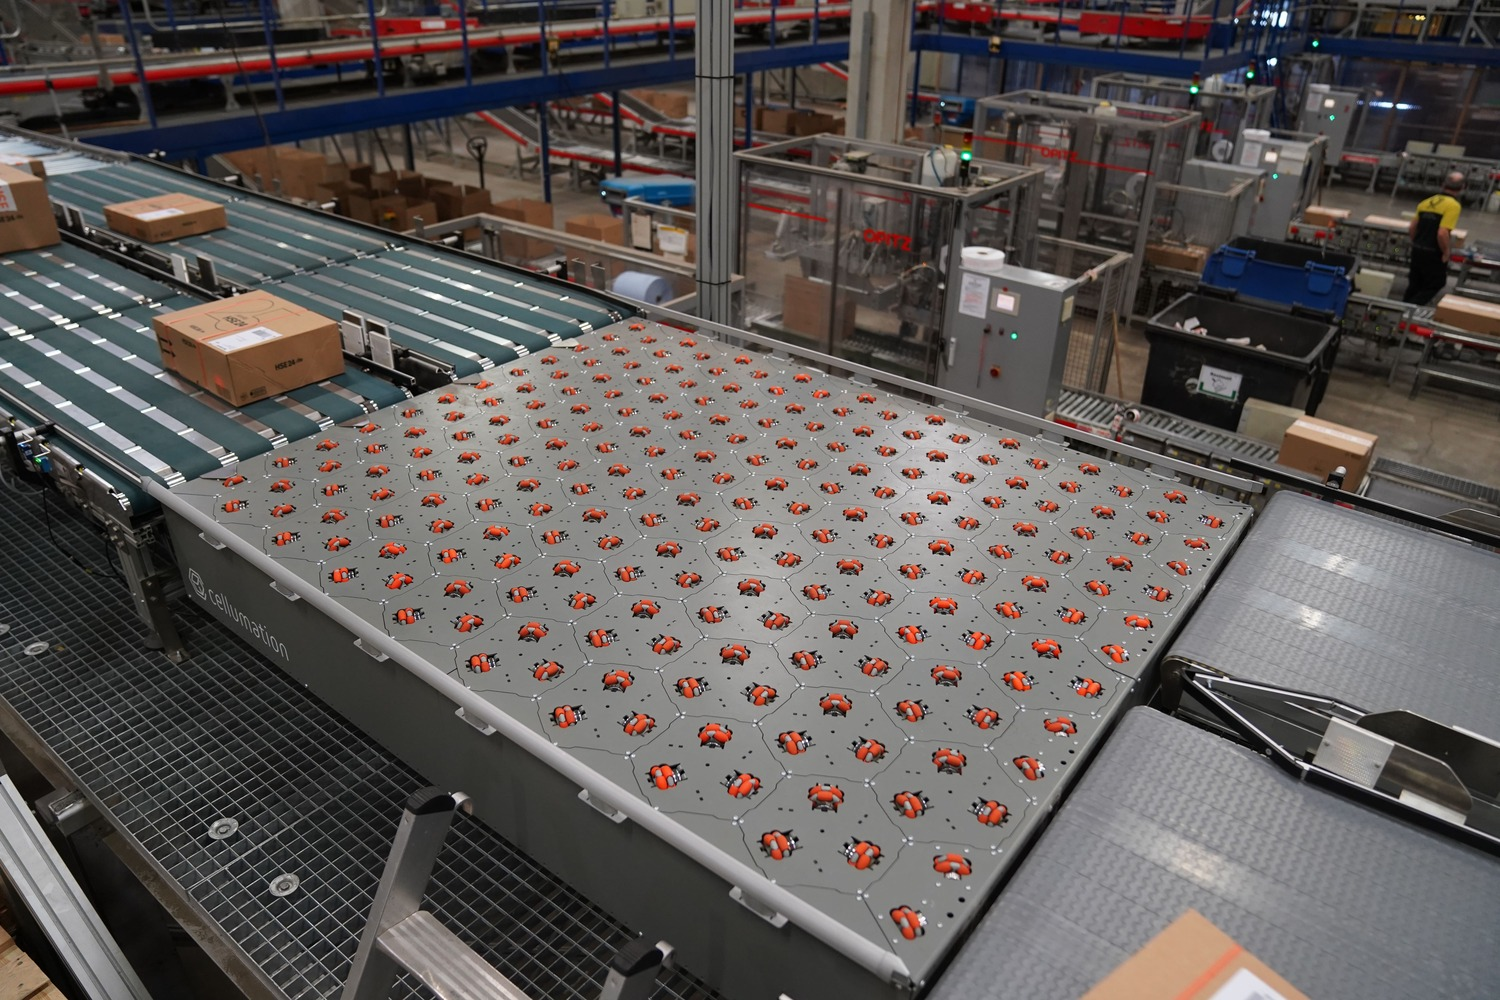 celluveyor Sorting Machine two Inputs two Outputs